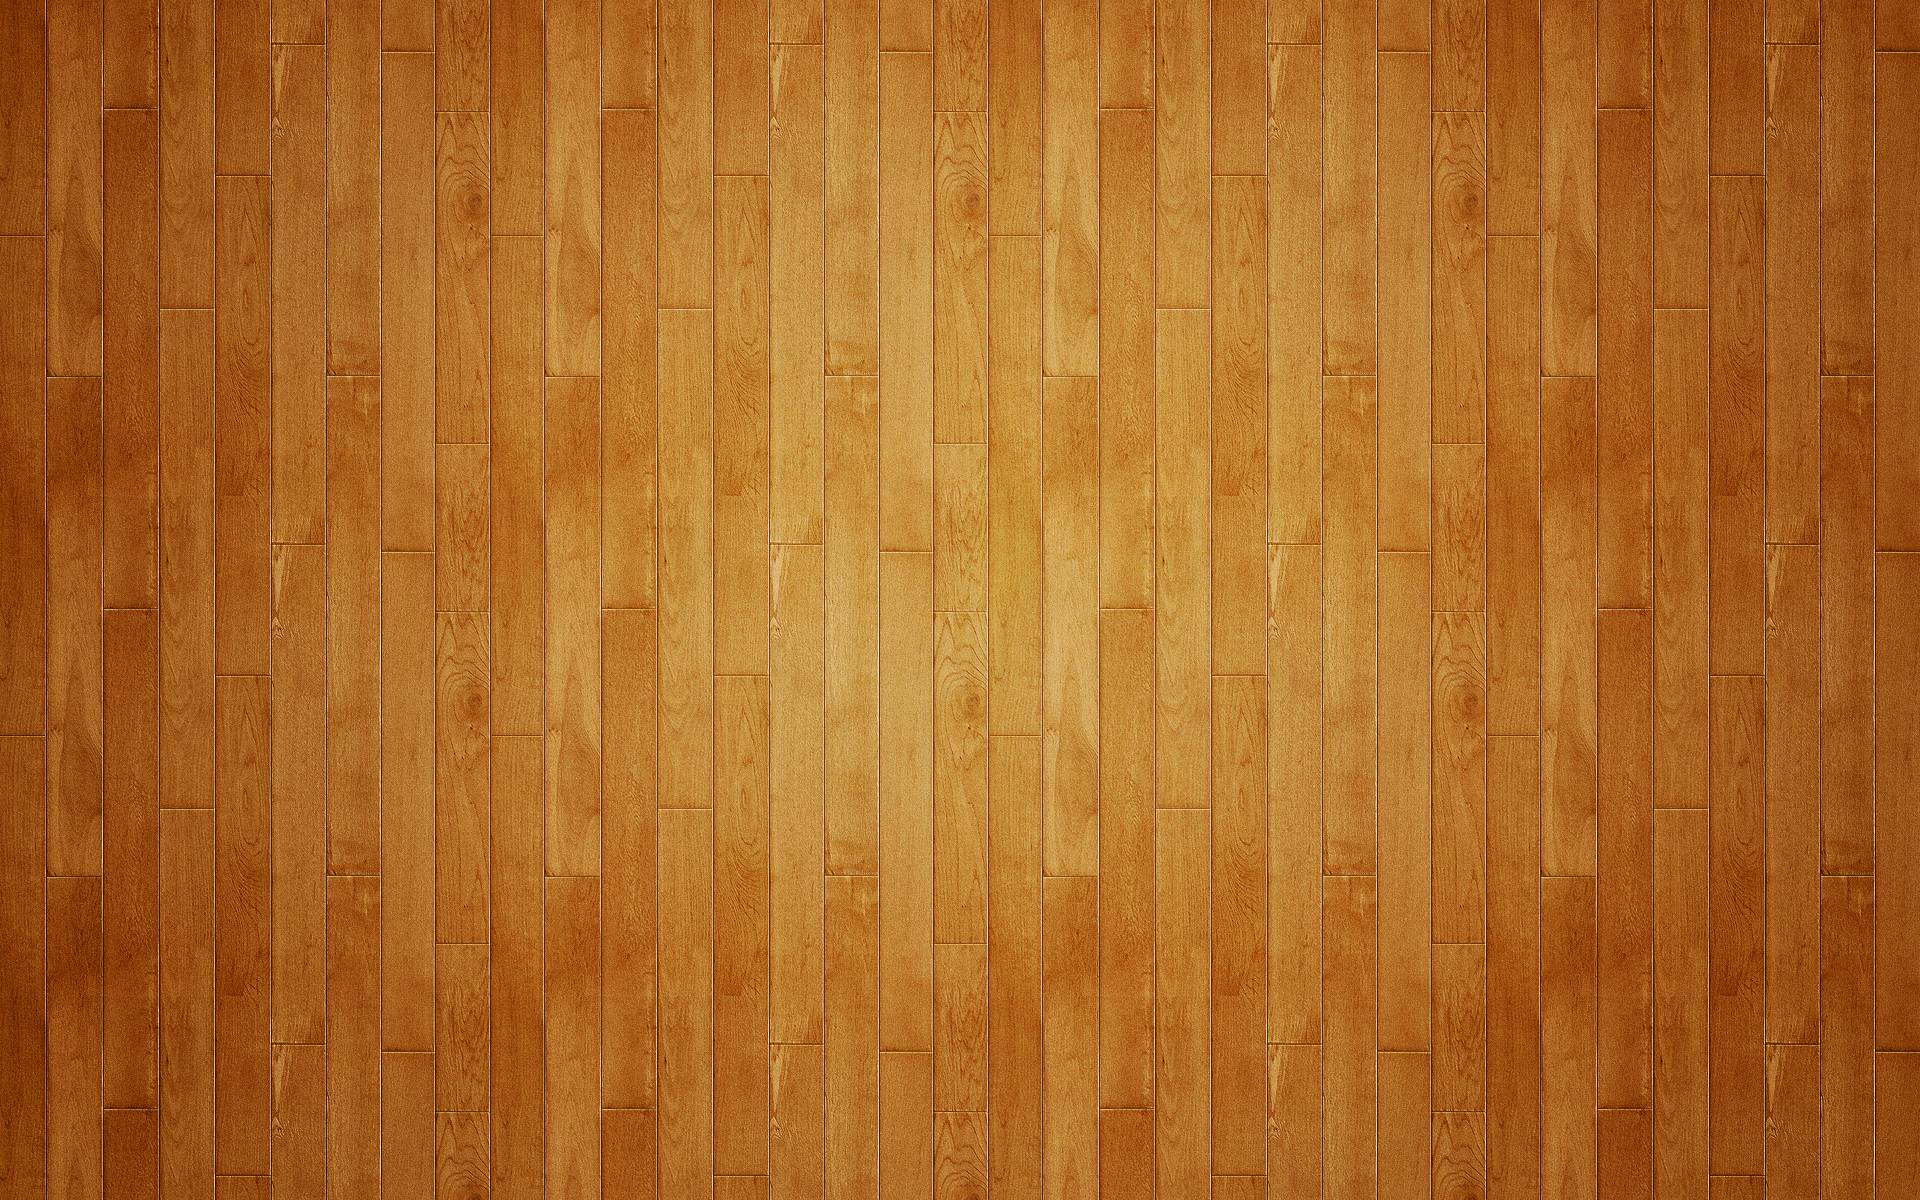 Texture Wood Wallpapers - Full HD wallpaper search